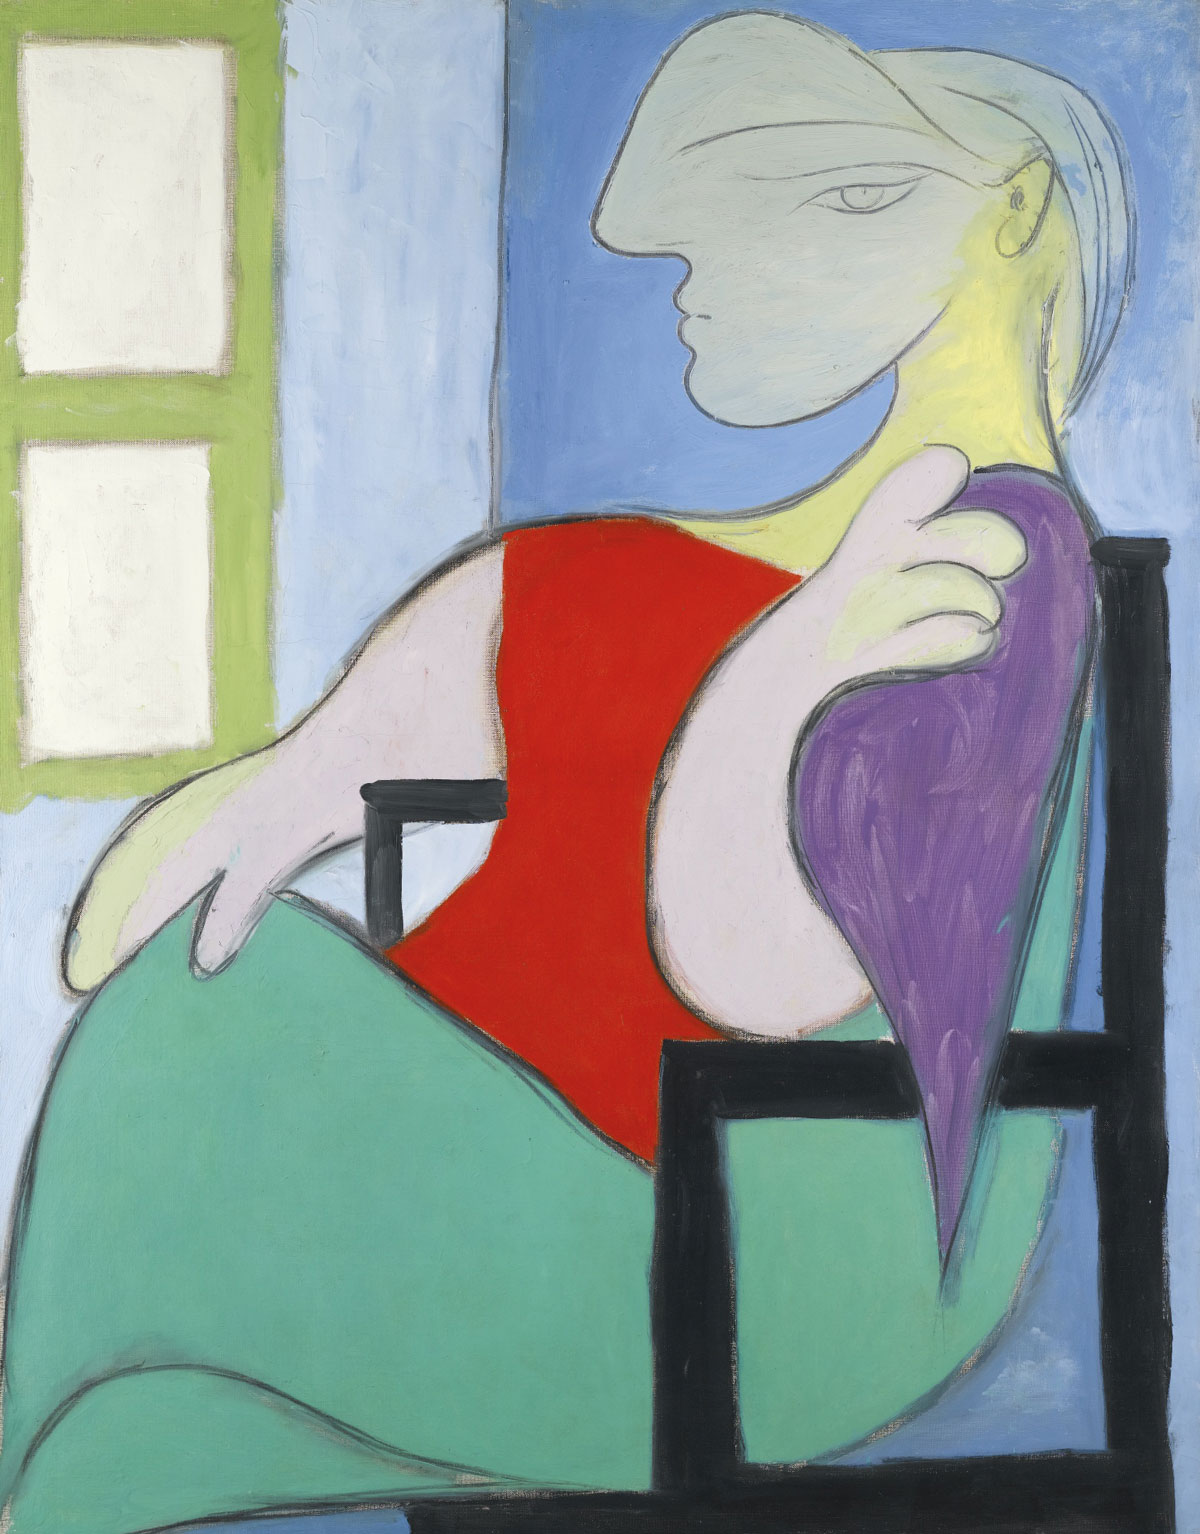 Pablo Picasso's 'Golden Muse' at Sotheby's  for $56 Million